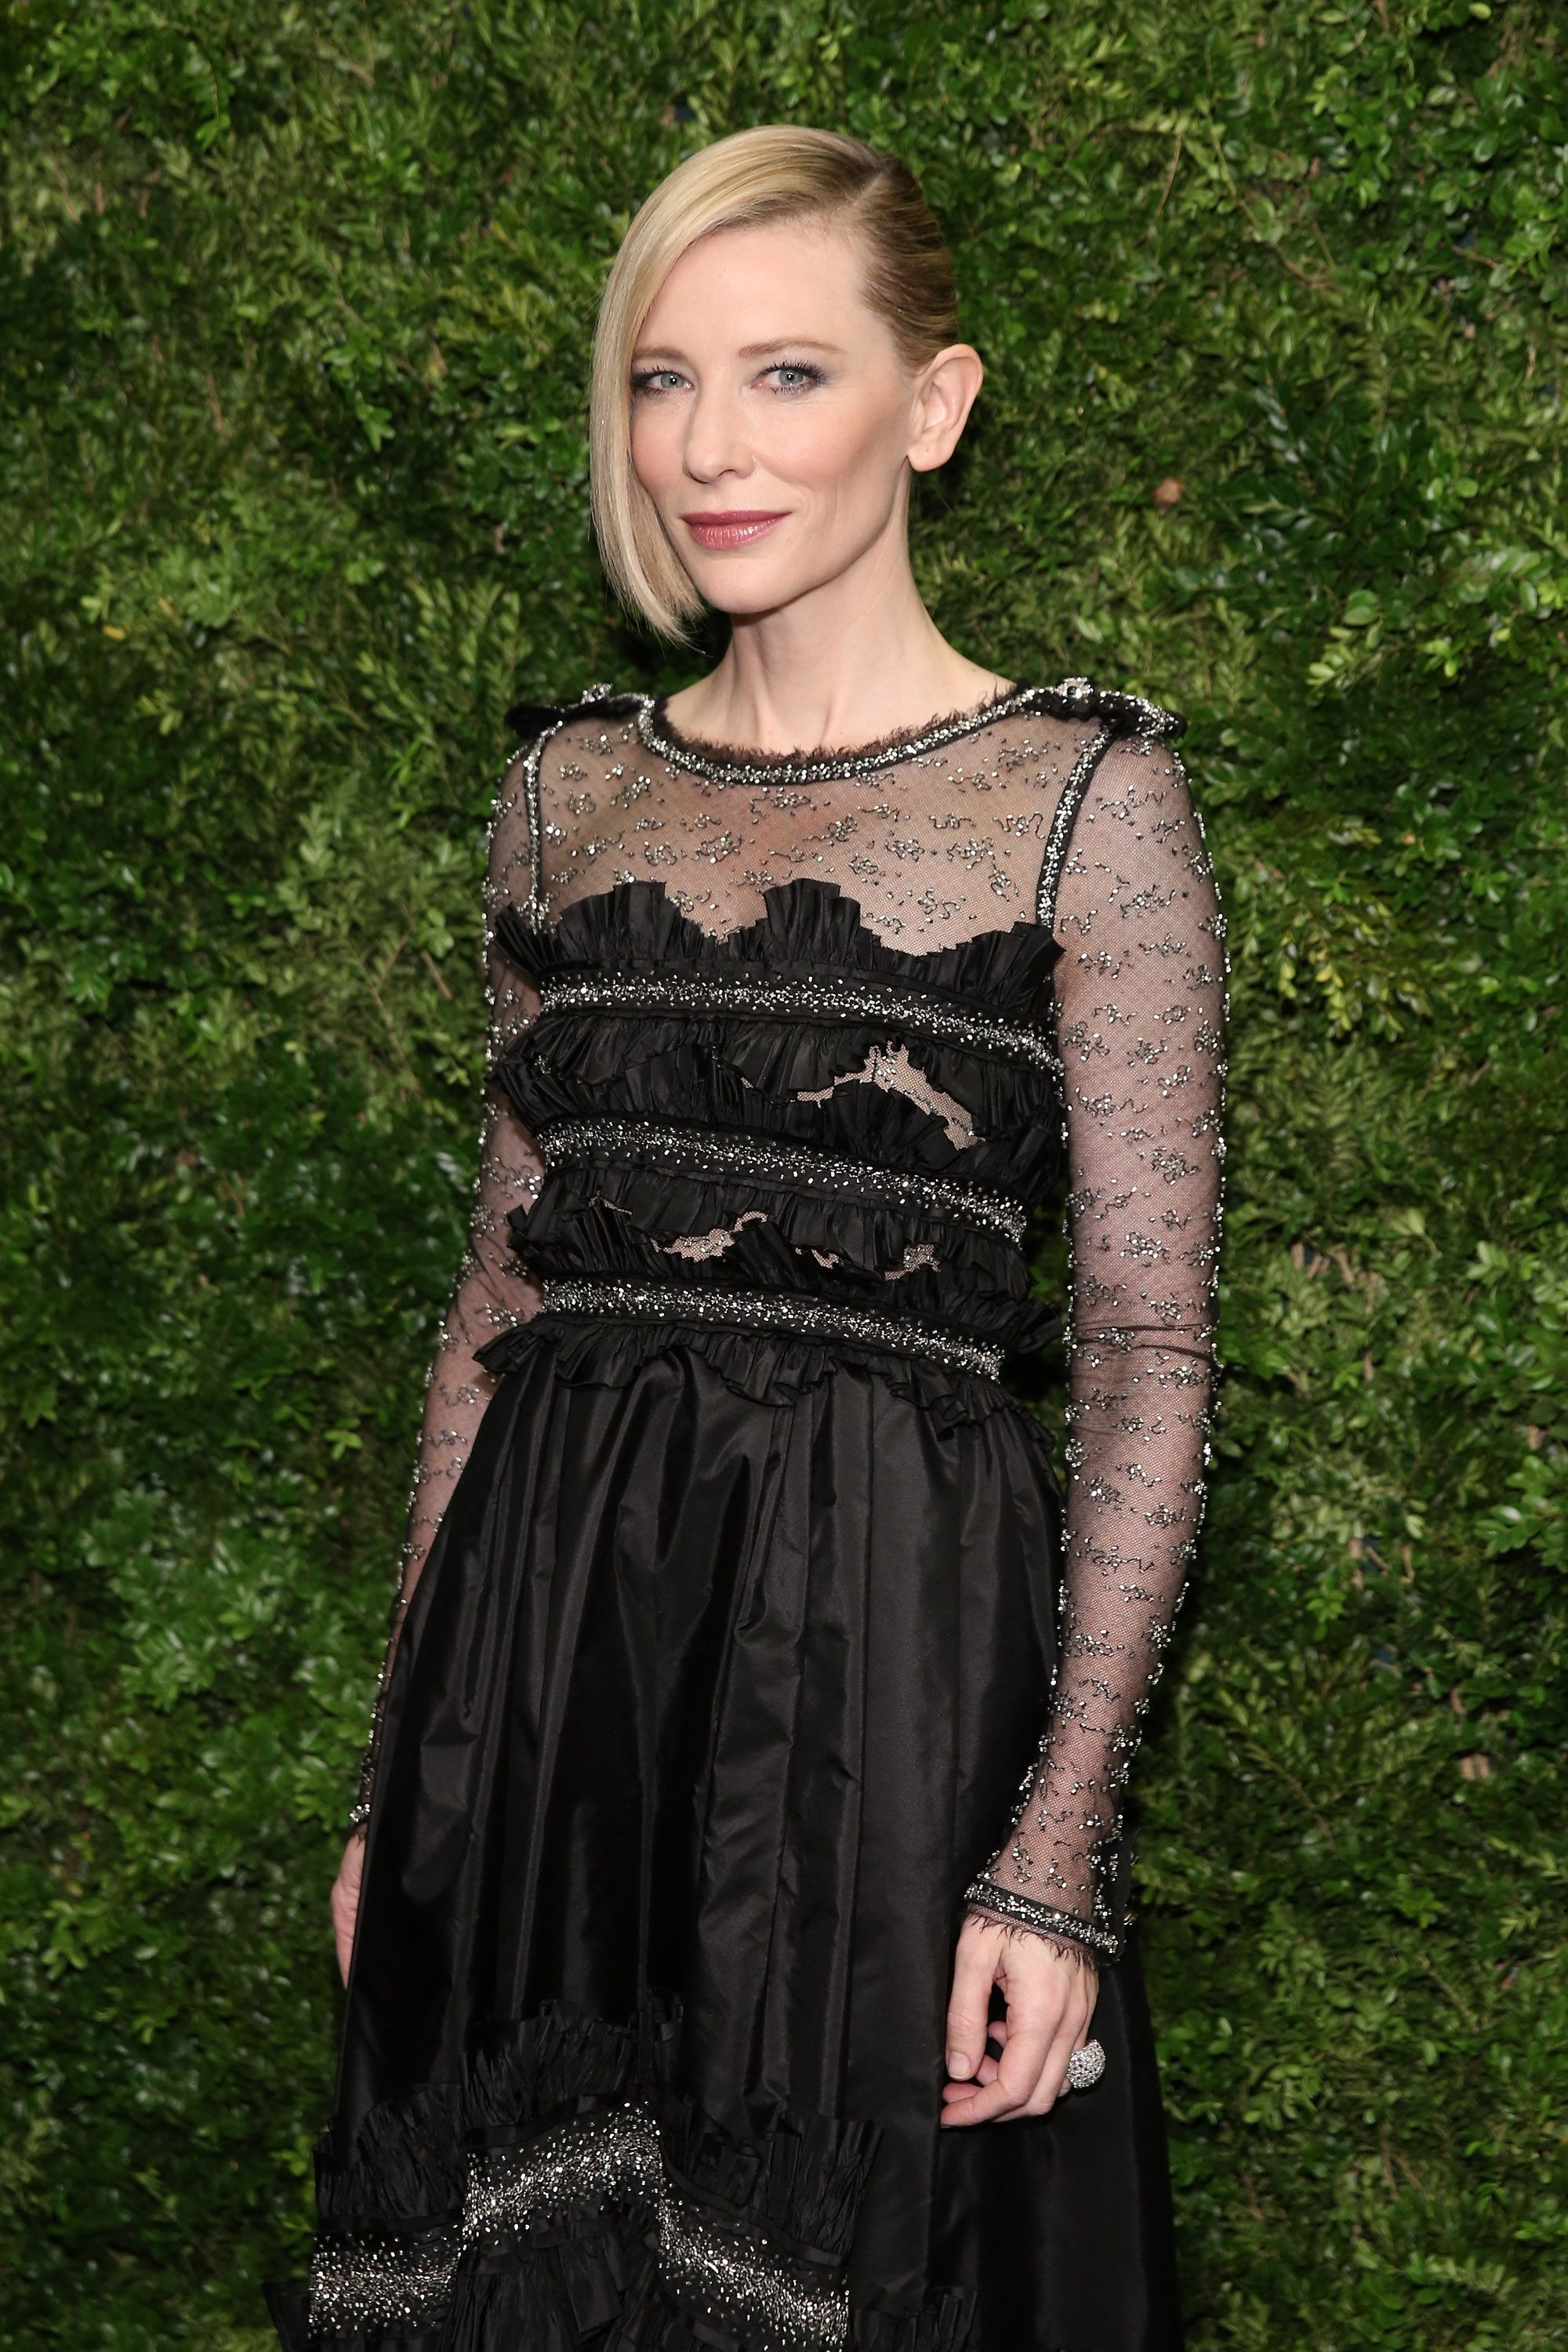 Cate Blanchett attends the Museum of Modern Art's 8th Annual Film Benefit Honoring Cate Blanchett in  2015 in New York City | Source: Getty Images